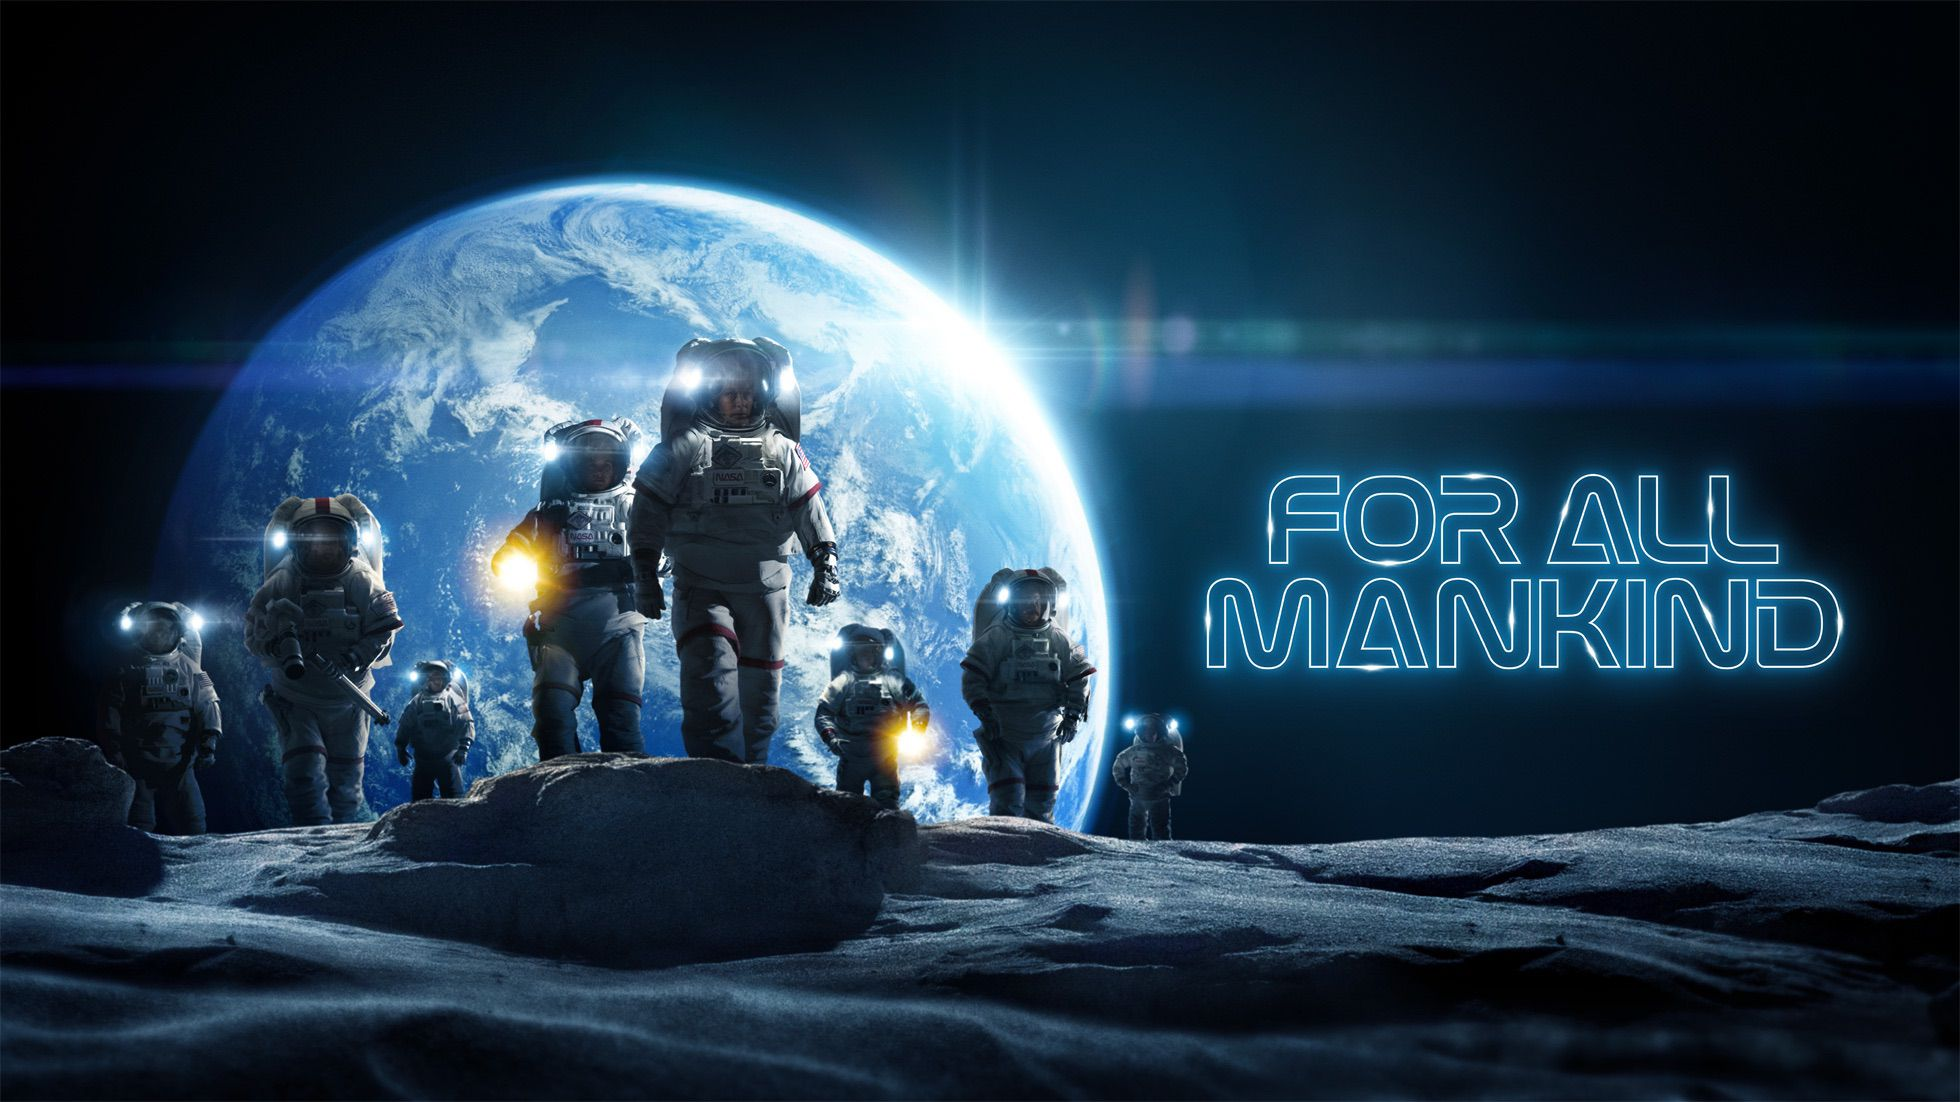 Science fiction drama For All Mankind Season 2 Episode 6